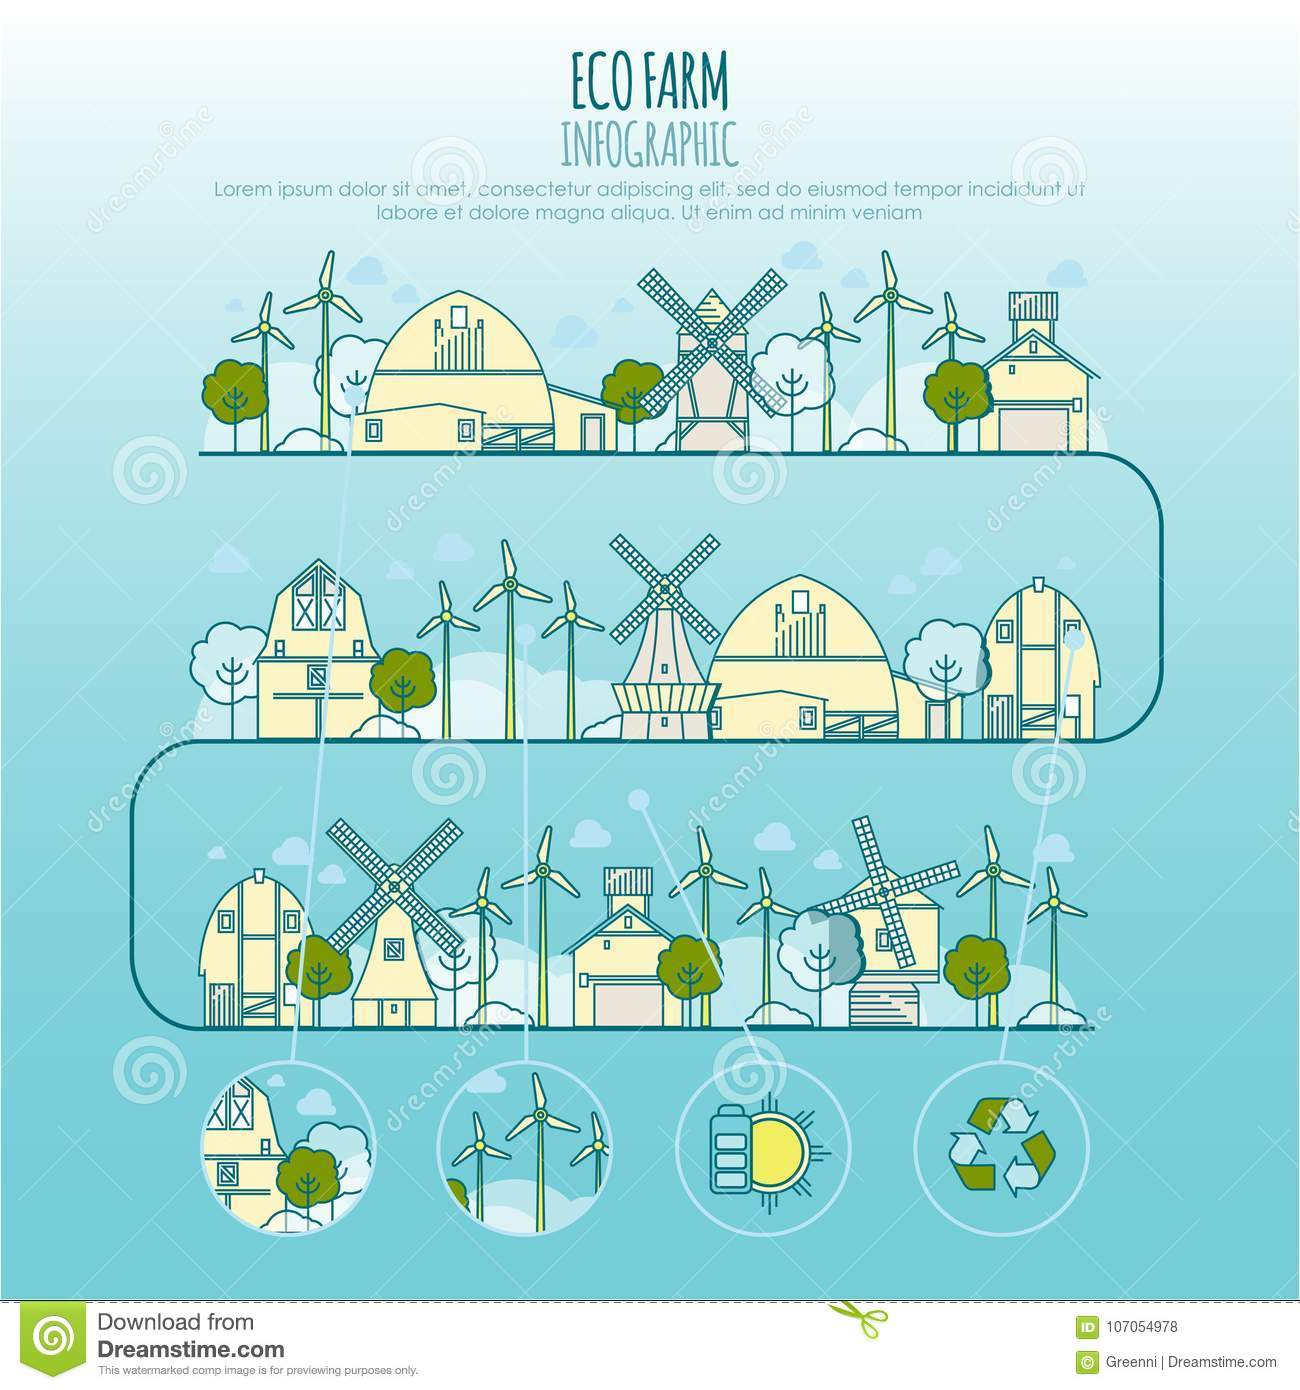 ecology farm infographic vector template with thin line icons of